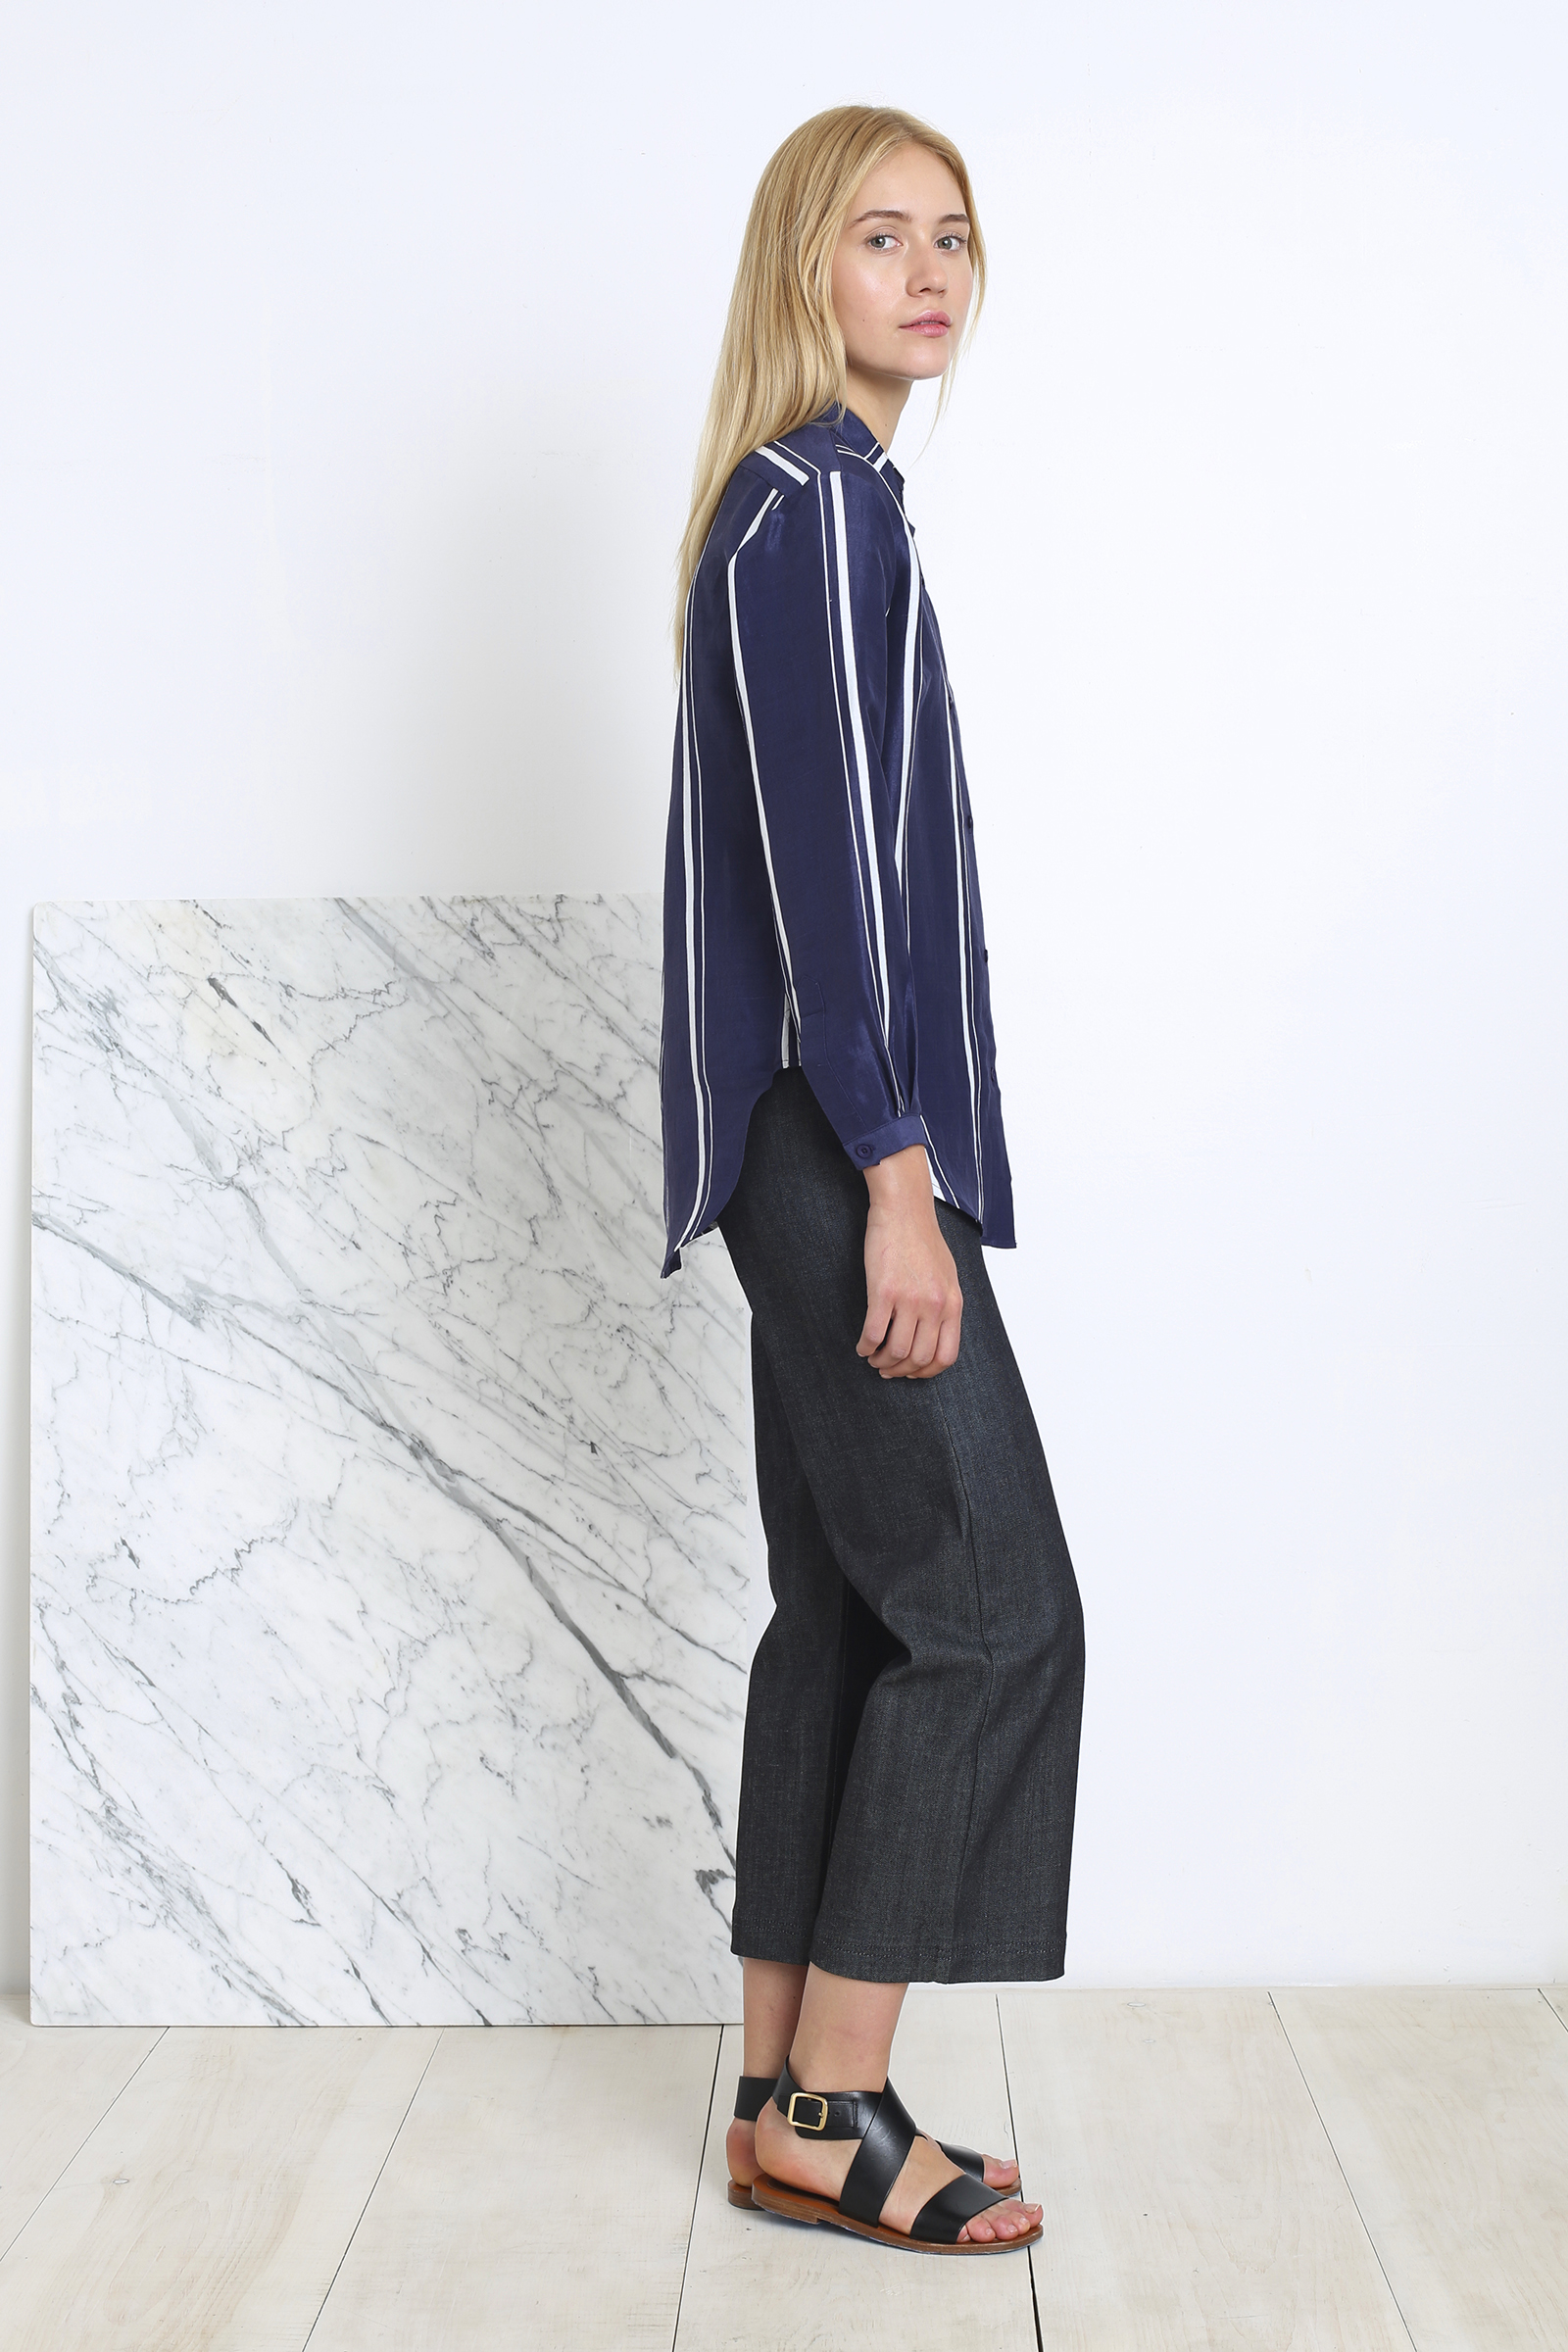 Apiece Apart | New York Fashion Brand